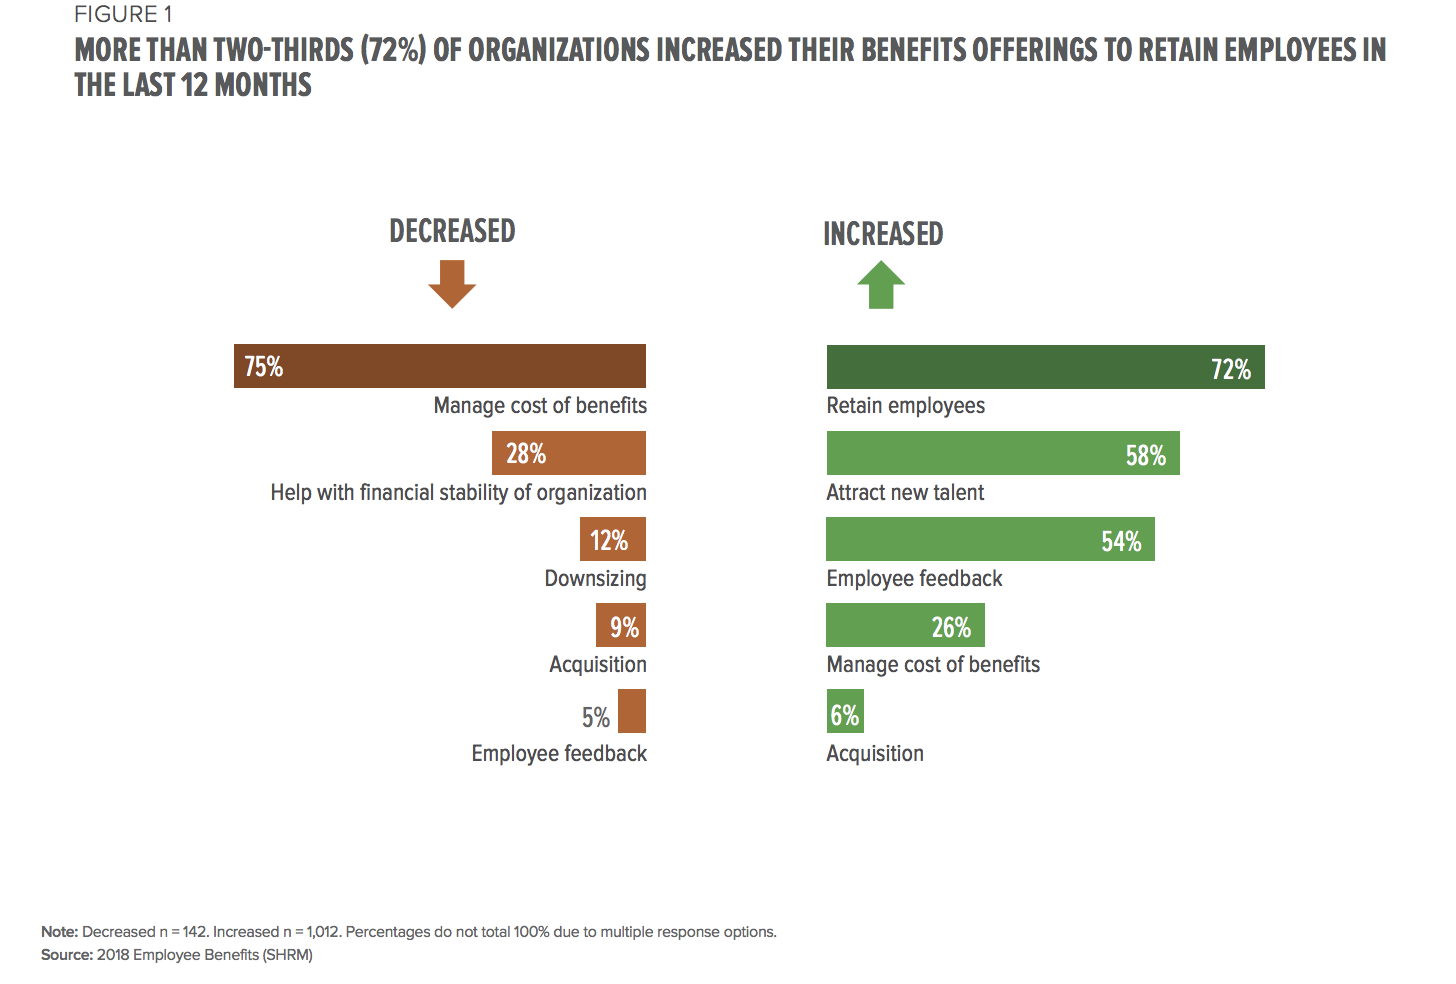 Organizations increase benefits in last 12 months